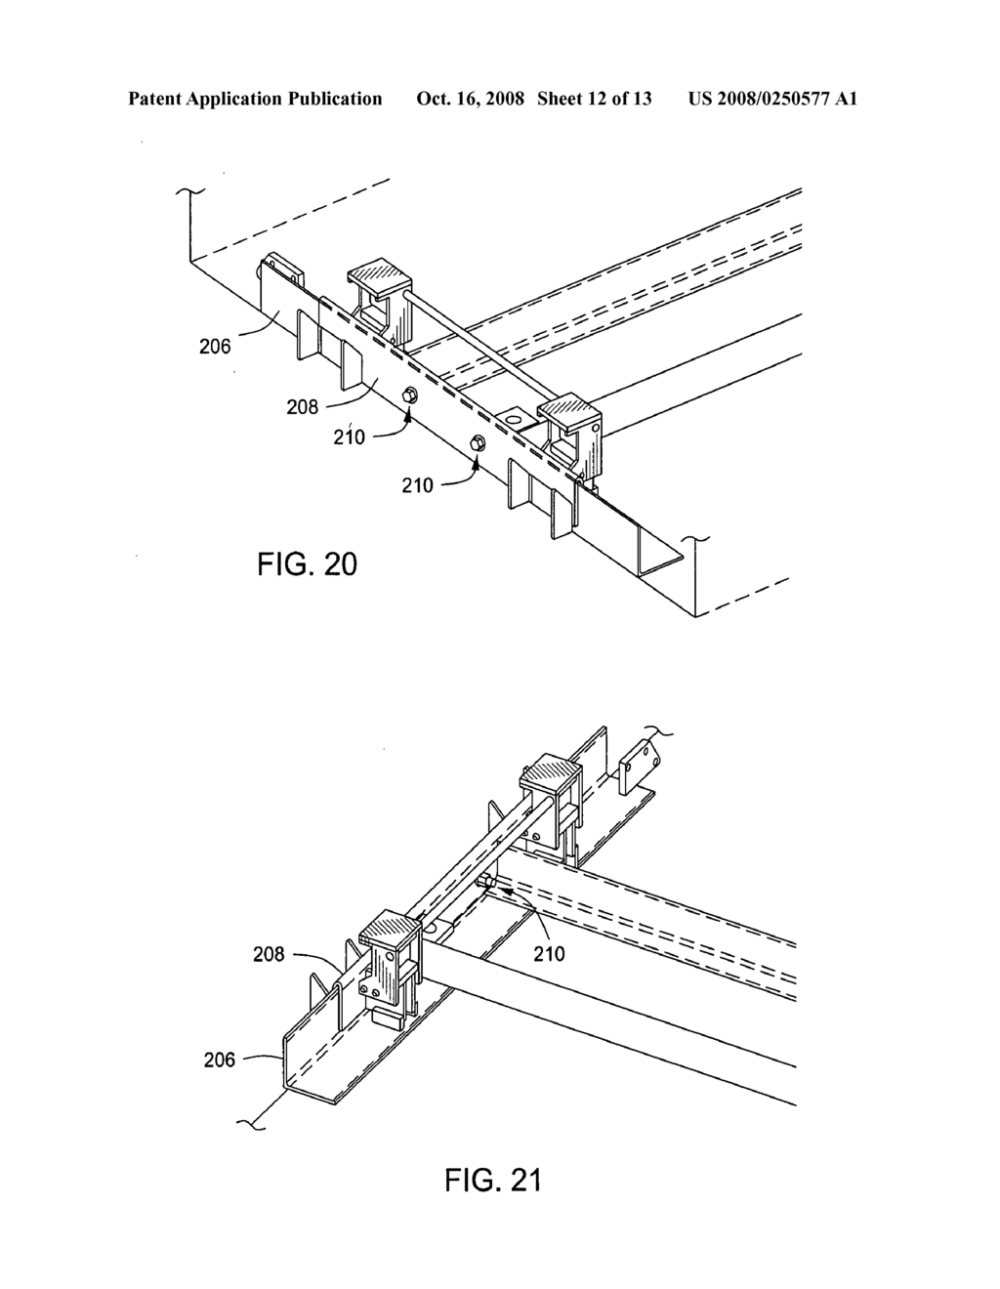 medium resolution of shimless frame support method and apparatus for dock levelers diagram schematic and image 13